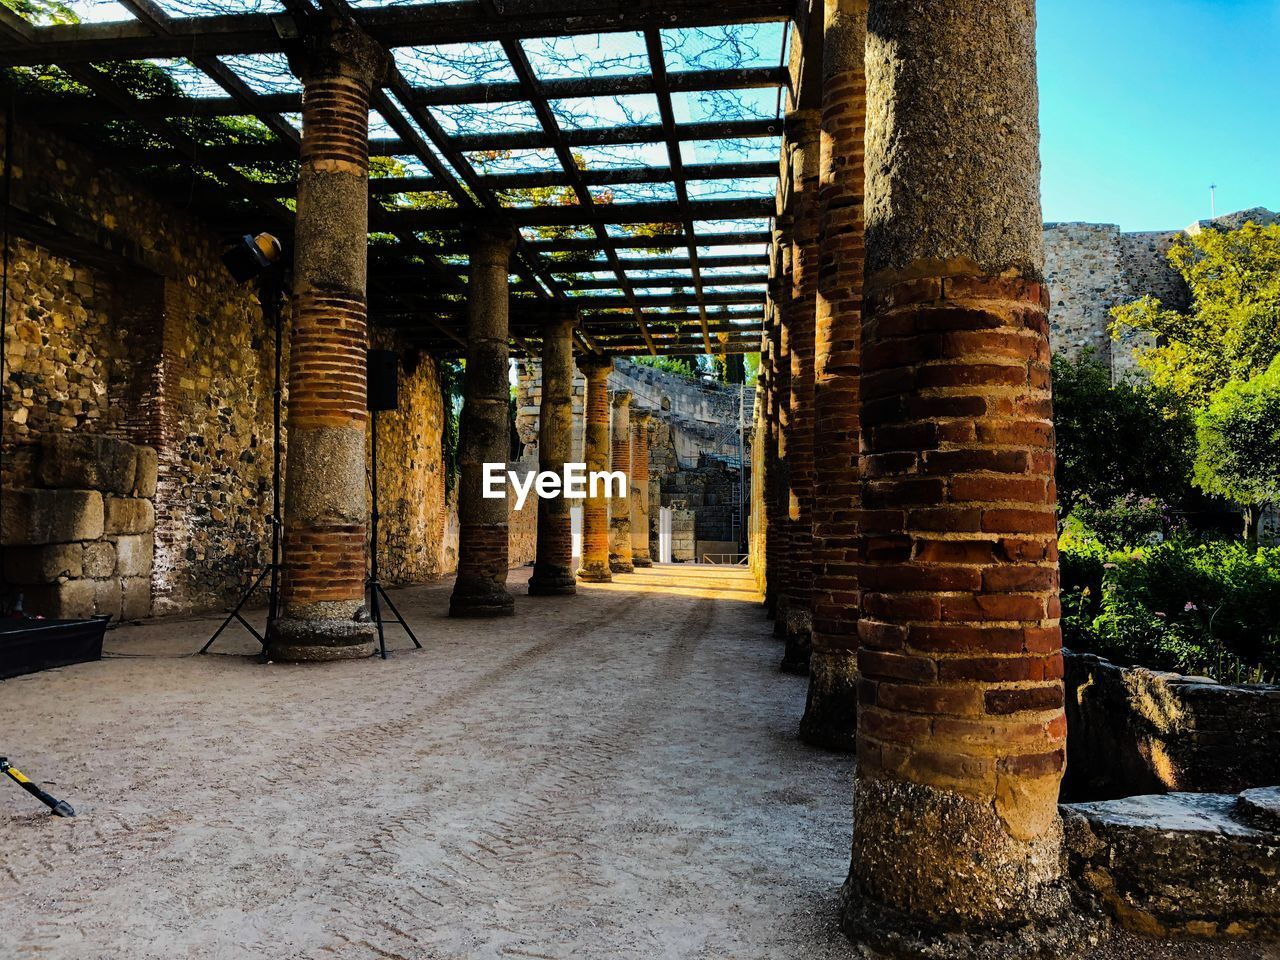 architecture, built structure, architectural column, building, day, no people, nature, outdoors, brick, old, sunlight, tree, direction, wall, arcade, history, the past, solid